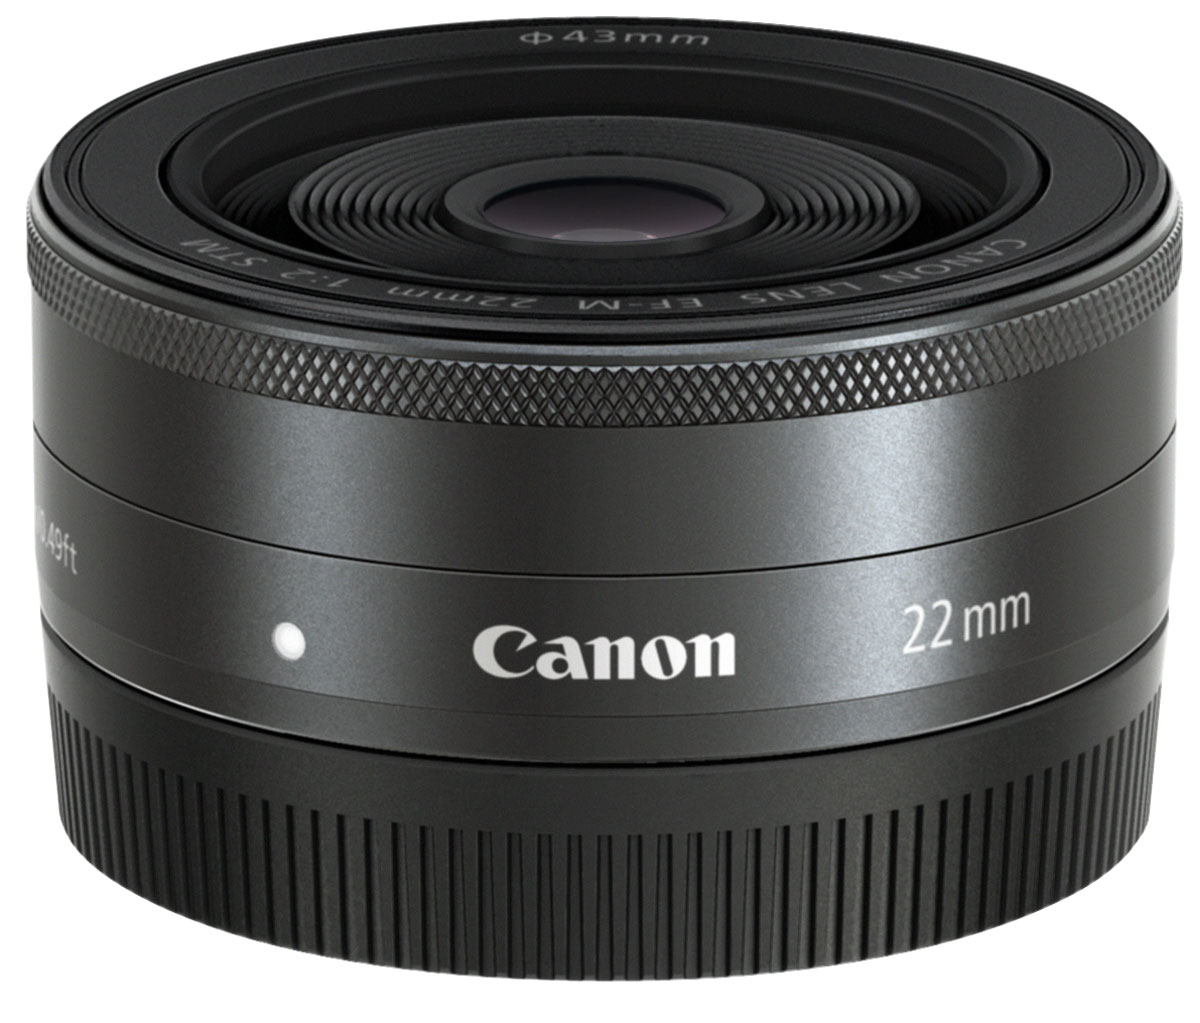 Canon EF-M 22 mm 2.0 STM, Black объектив - Объективы